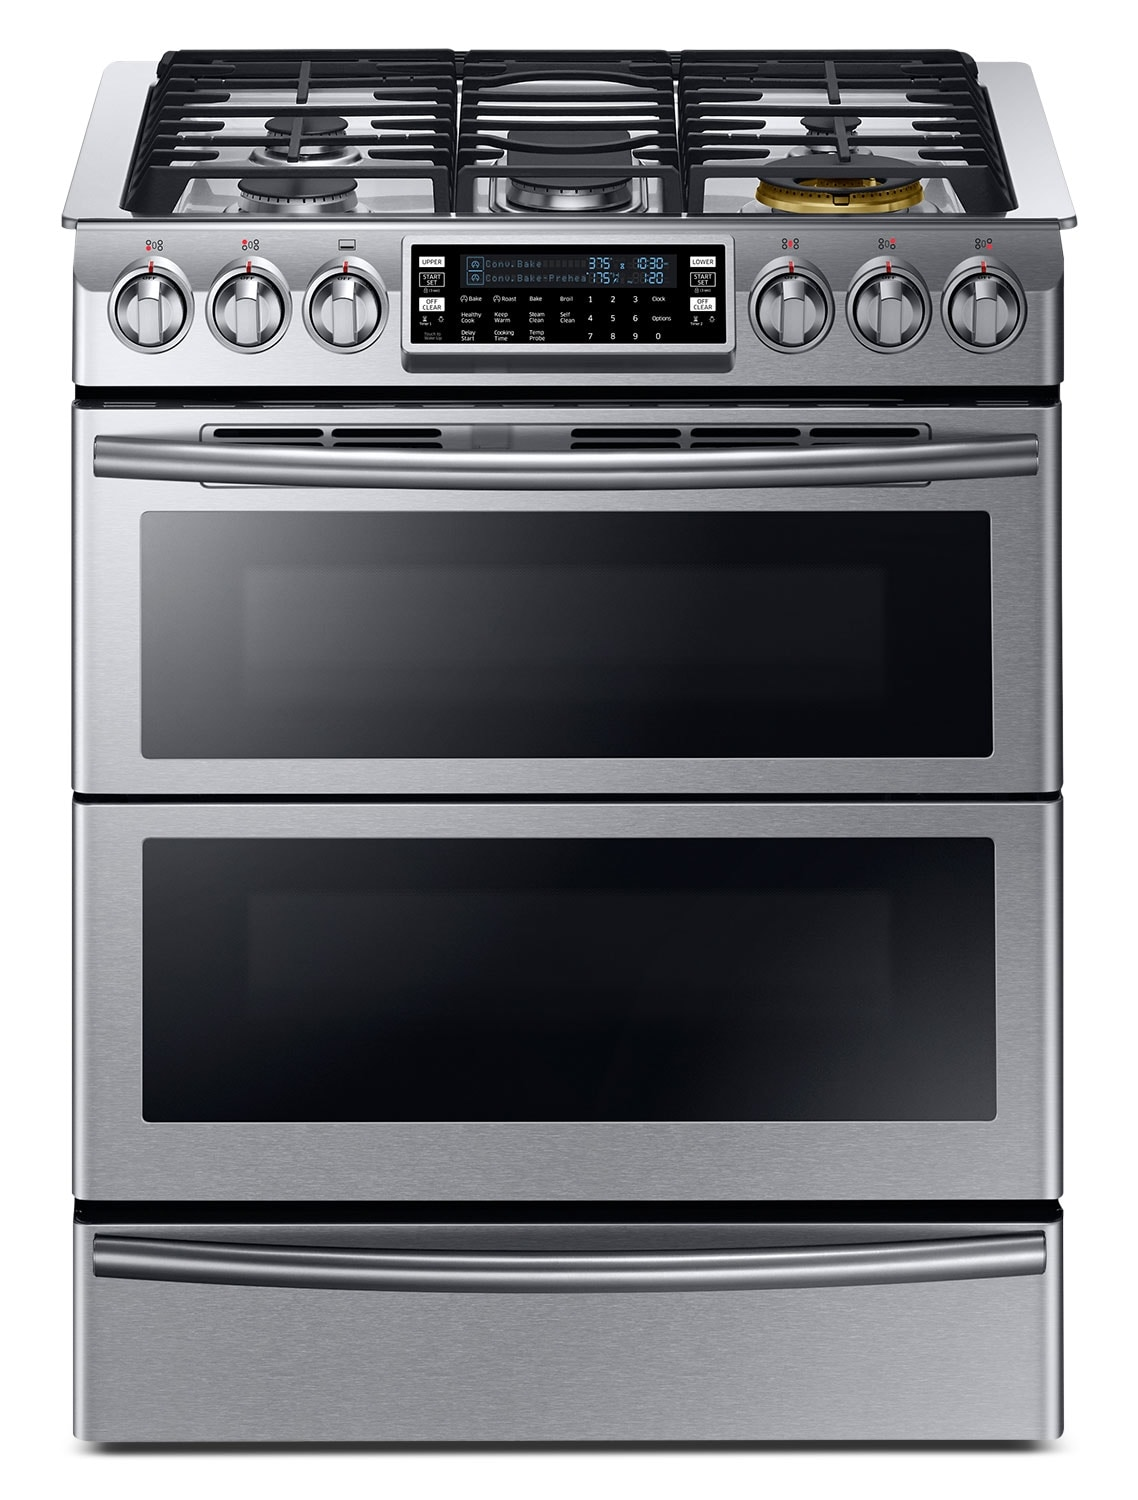 Samsung 5.8 Cu. Ft. Dual-Fuel Slide-In Range – NY58J9850WS/AC